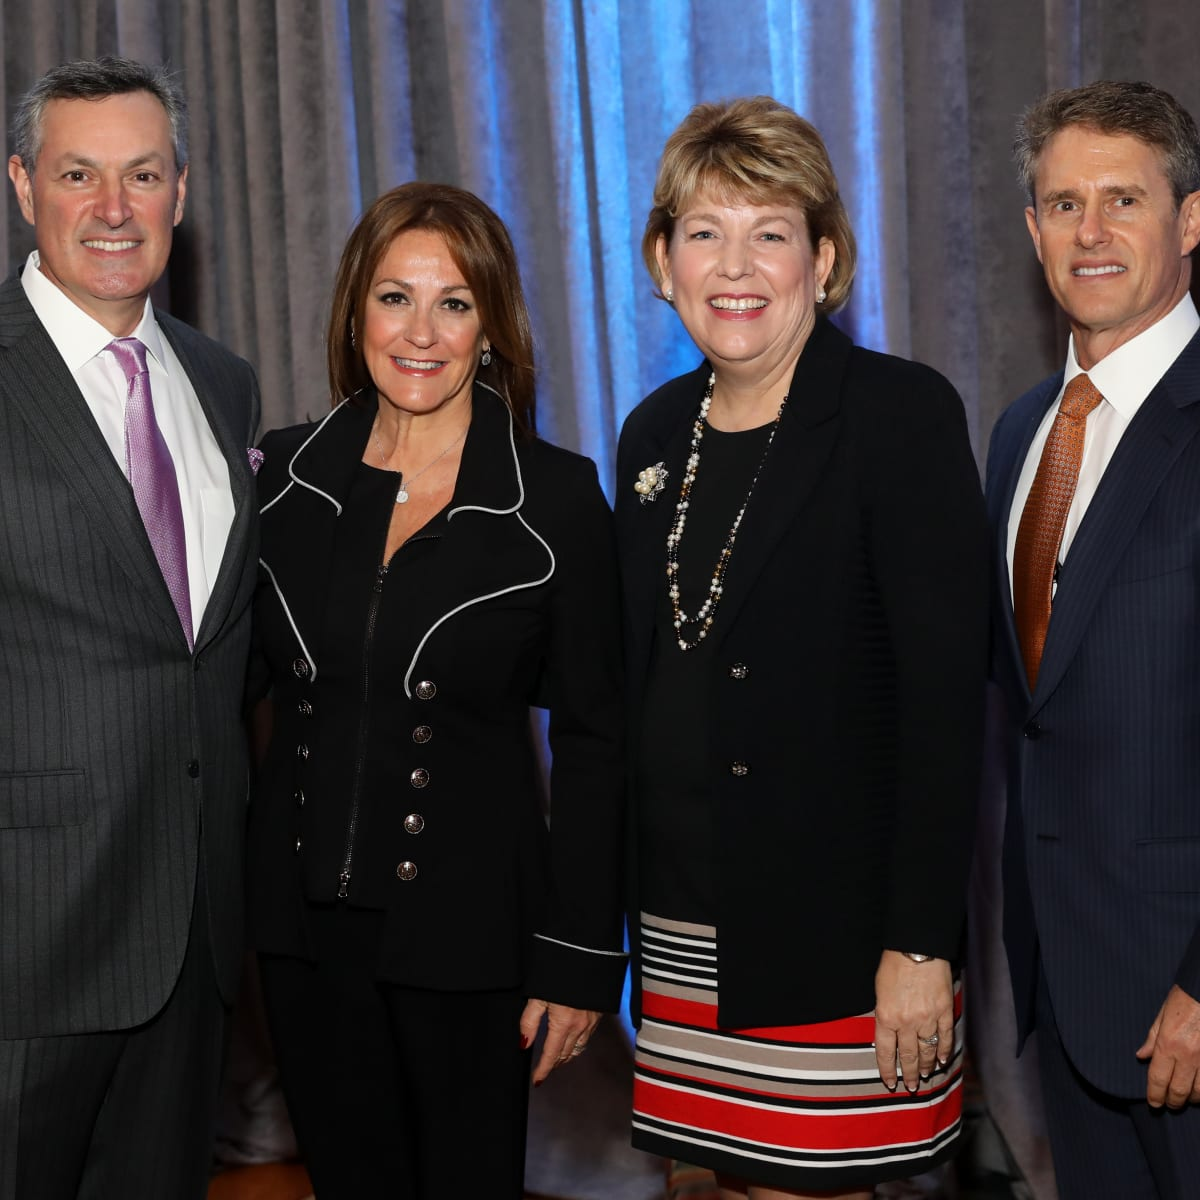 Houston, University of Texas at Austin Guardian of the Human Spirit Award Luncheon, November 2017, Gary Markowitz, Tali Blumrosen, Dr. Kelly J. Zúñiga, Eric Blumrosen